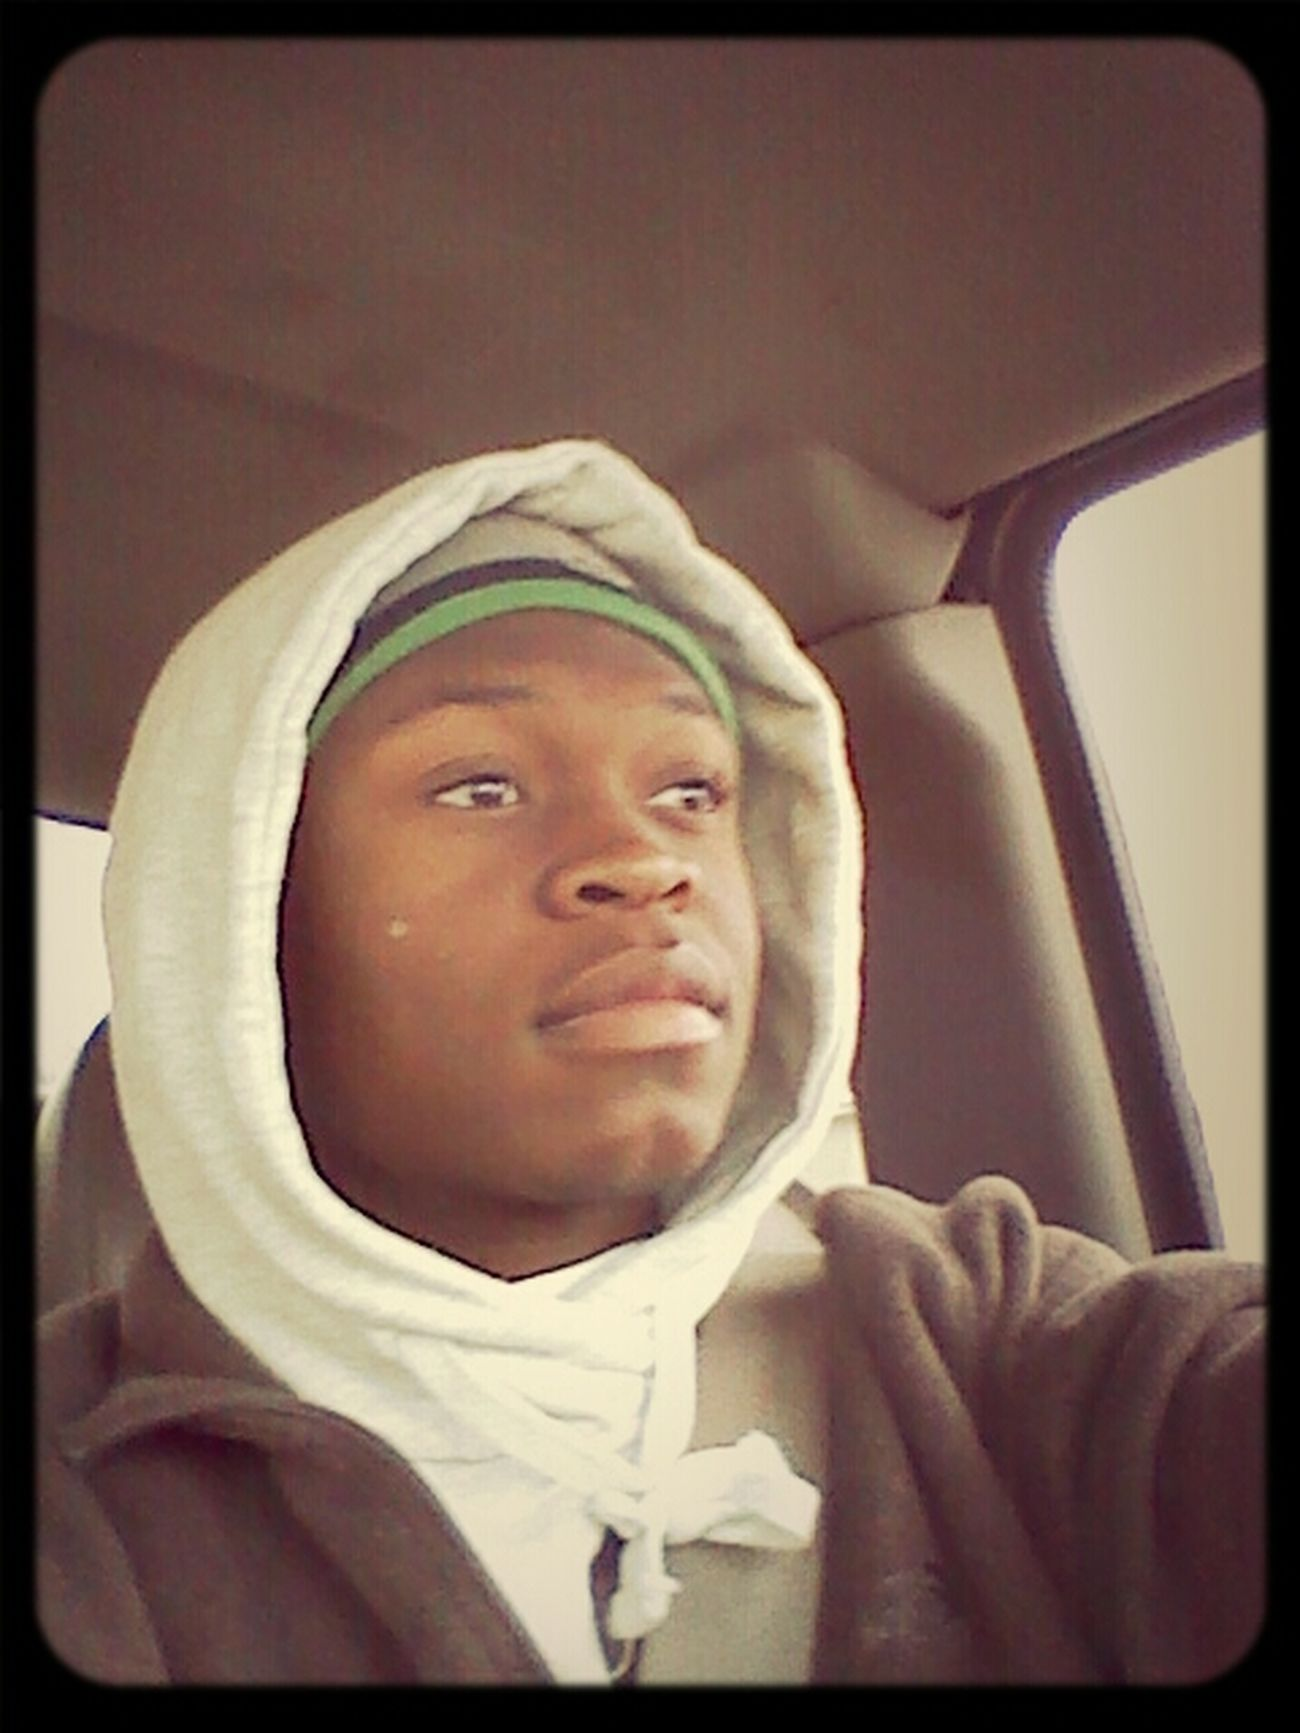 Its COLD out here